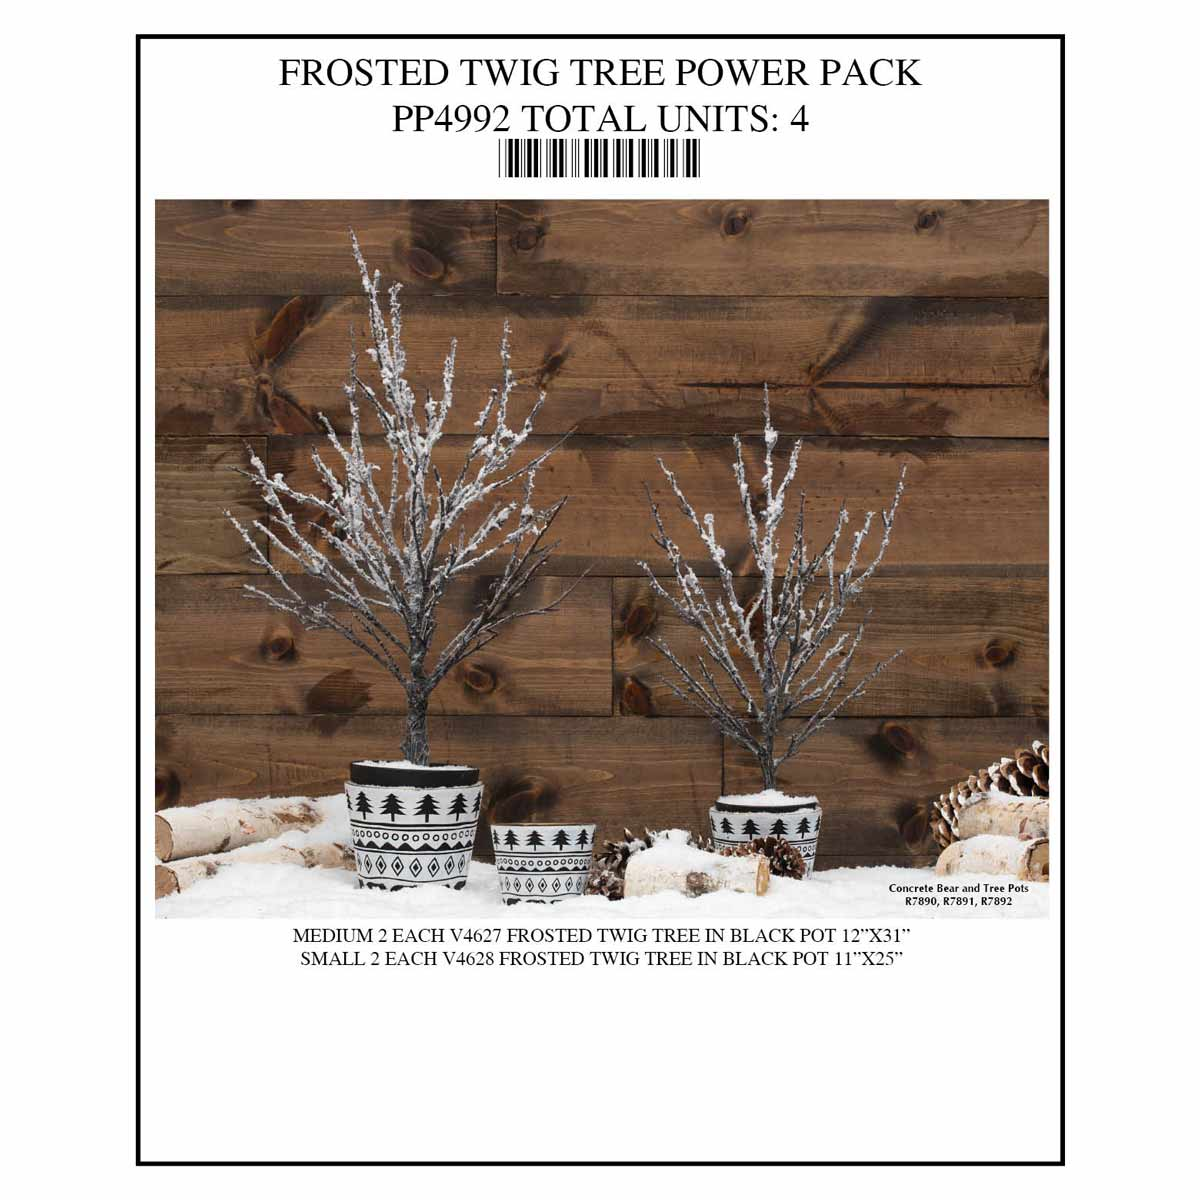 TREE TWIG POWER PACK 4 UNITS